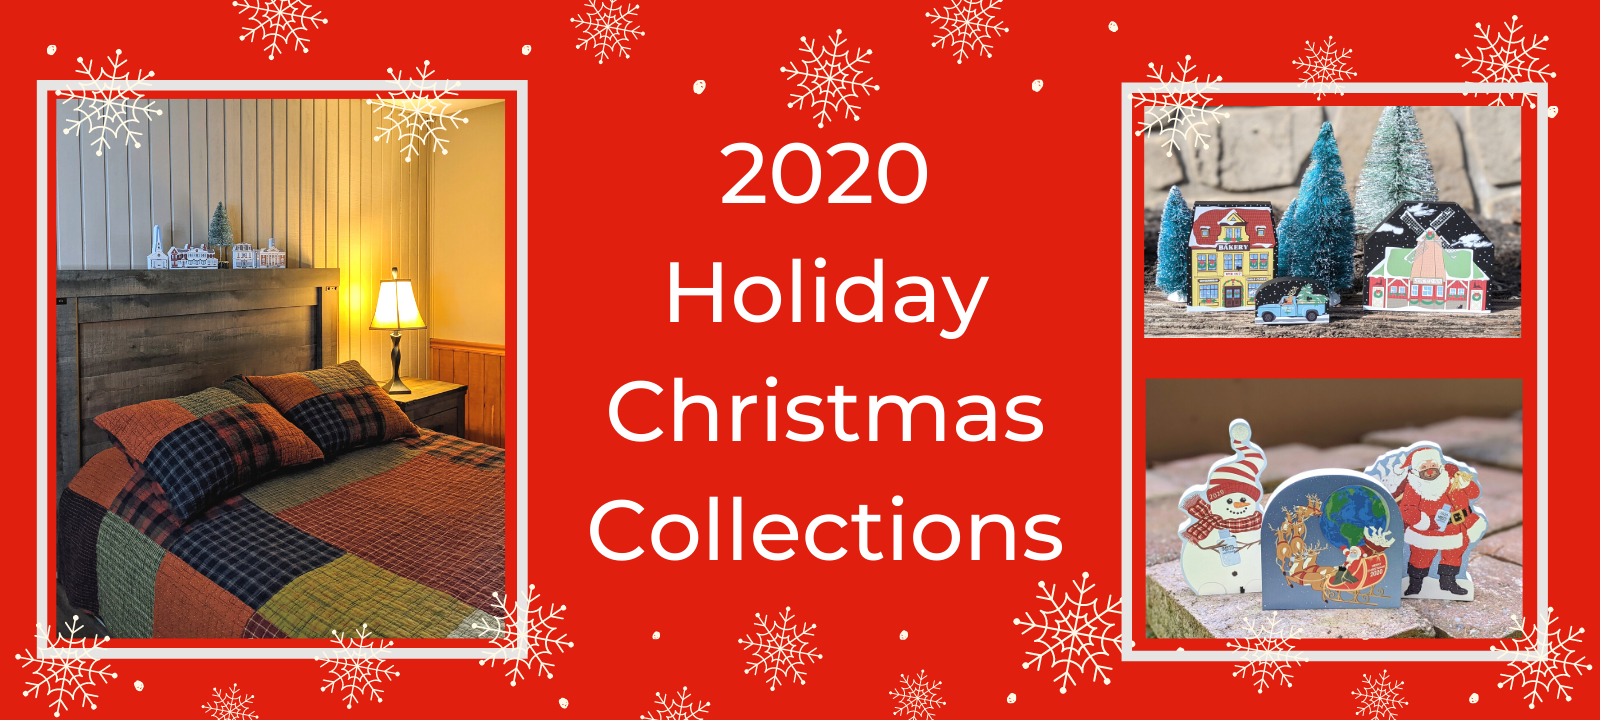 Check out all our 2020 holiday Christmas collections this year.